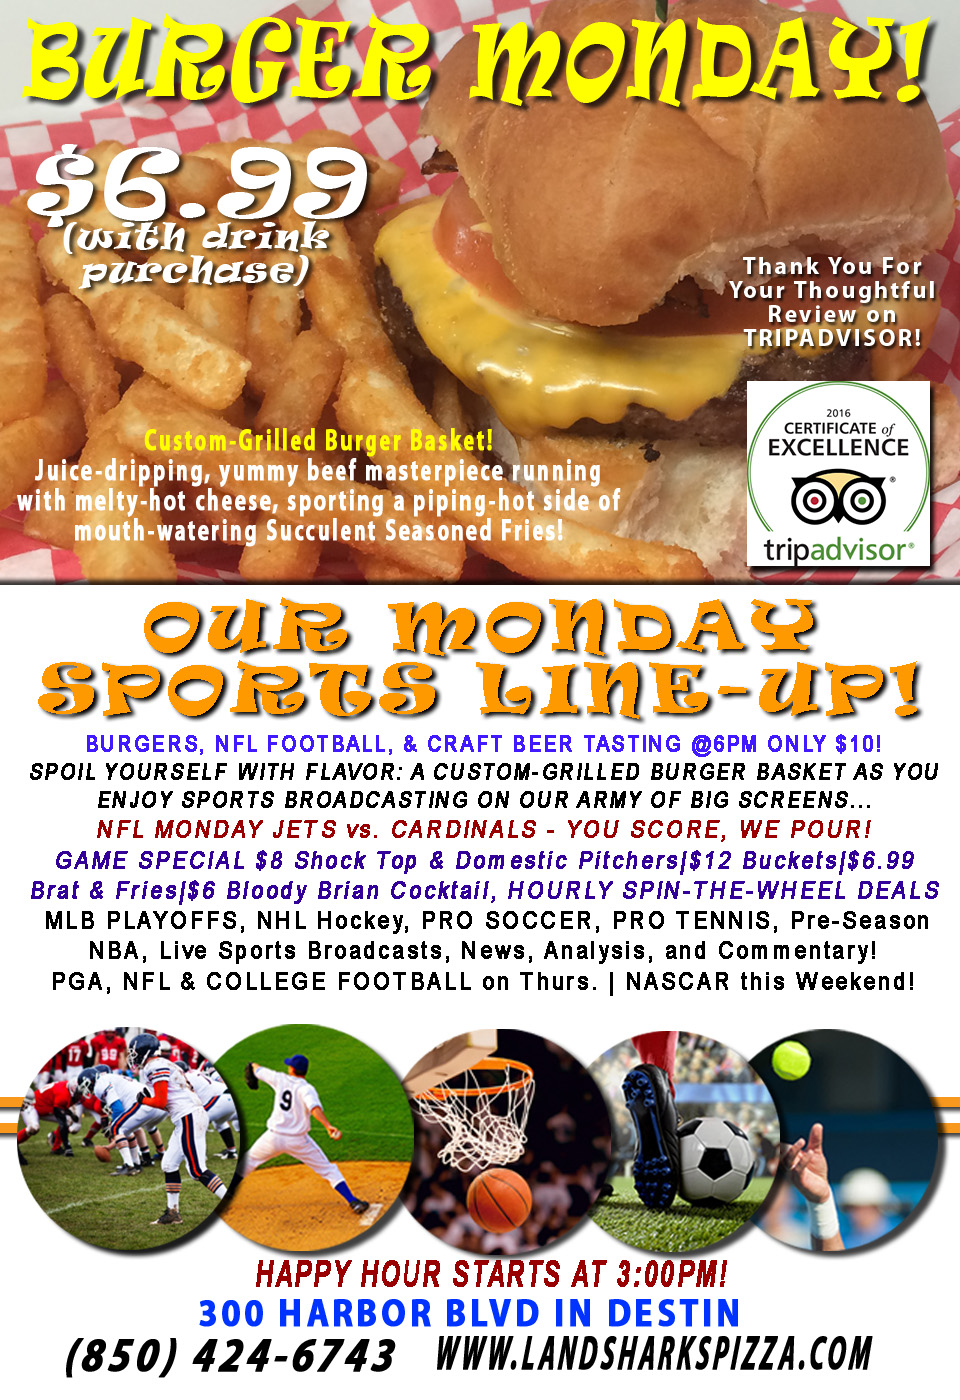 Burger Monday Landshark's Pizza NFL Craft Beer